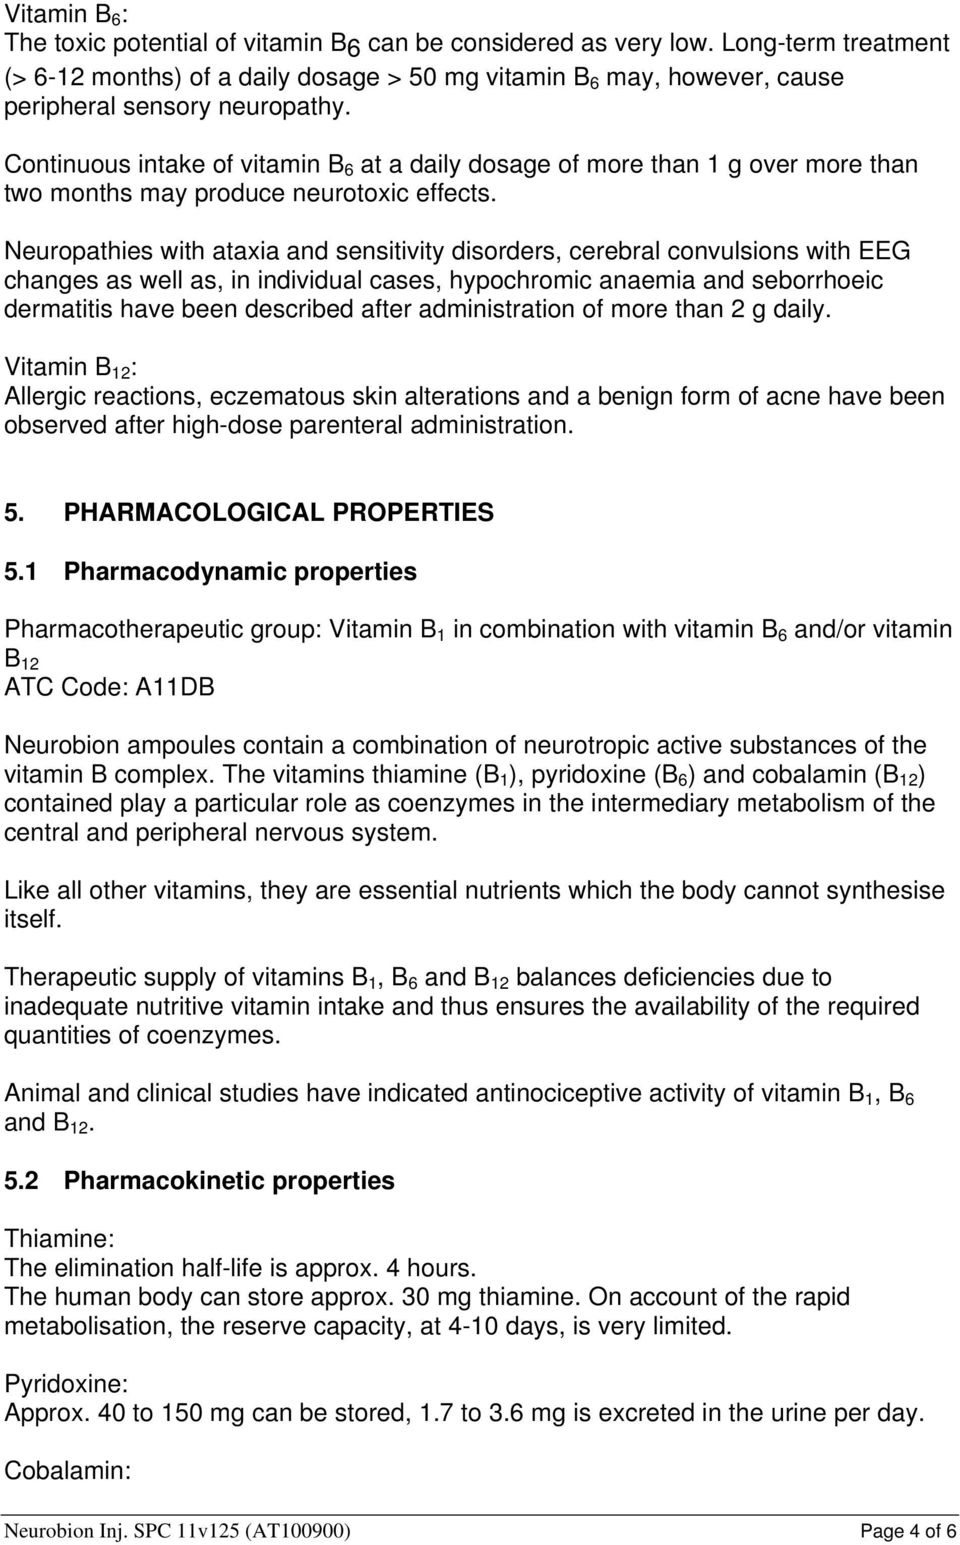 SUMMARY OF PRODUCT CHARACTERISTICS  100 mg - PDF